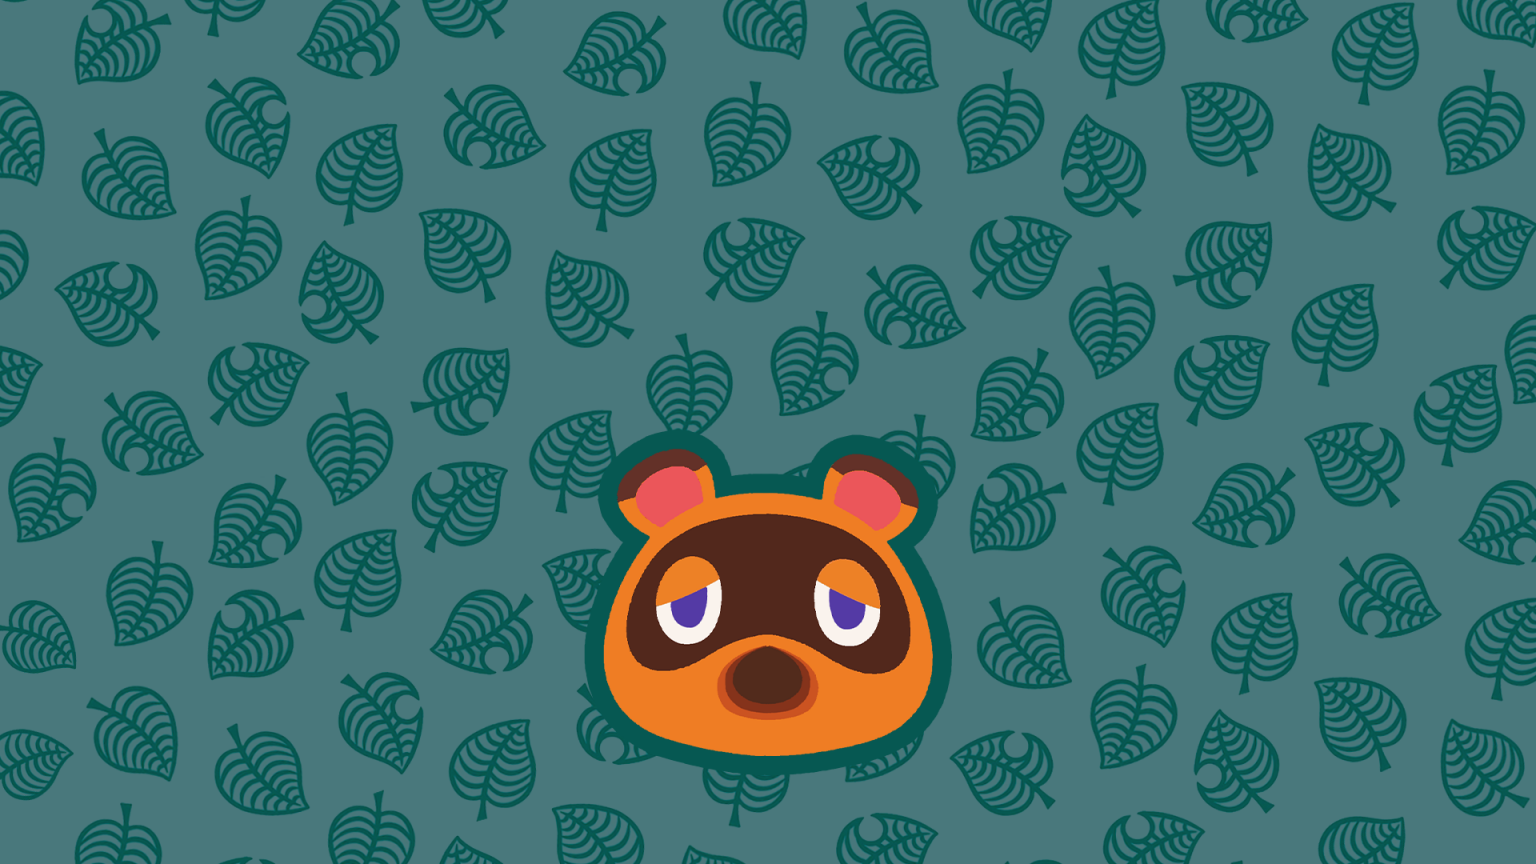 Animal Crossing New Horizons Mobile And Desktop Wallpapers Acpocketnews In 2020 Animal Crossing Desktop Wallpaper Animal Crossing Leaf